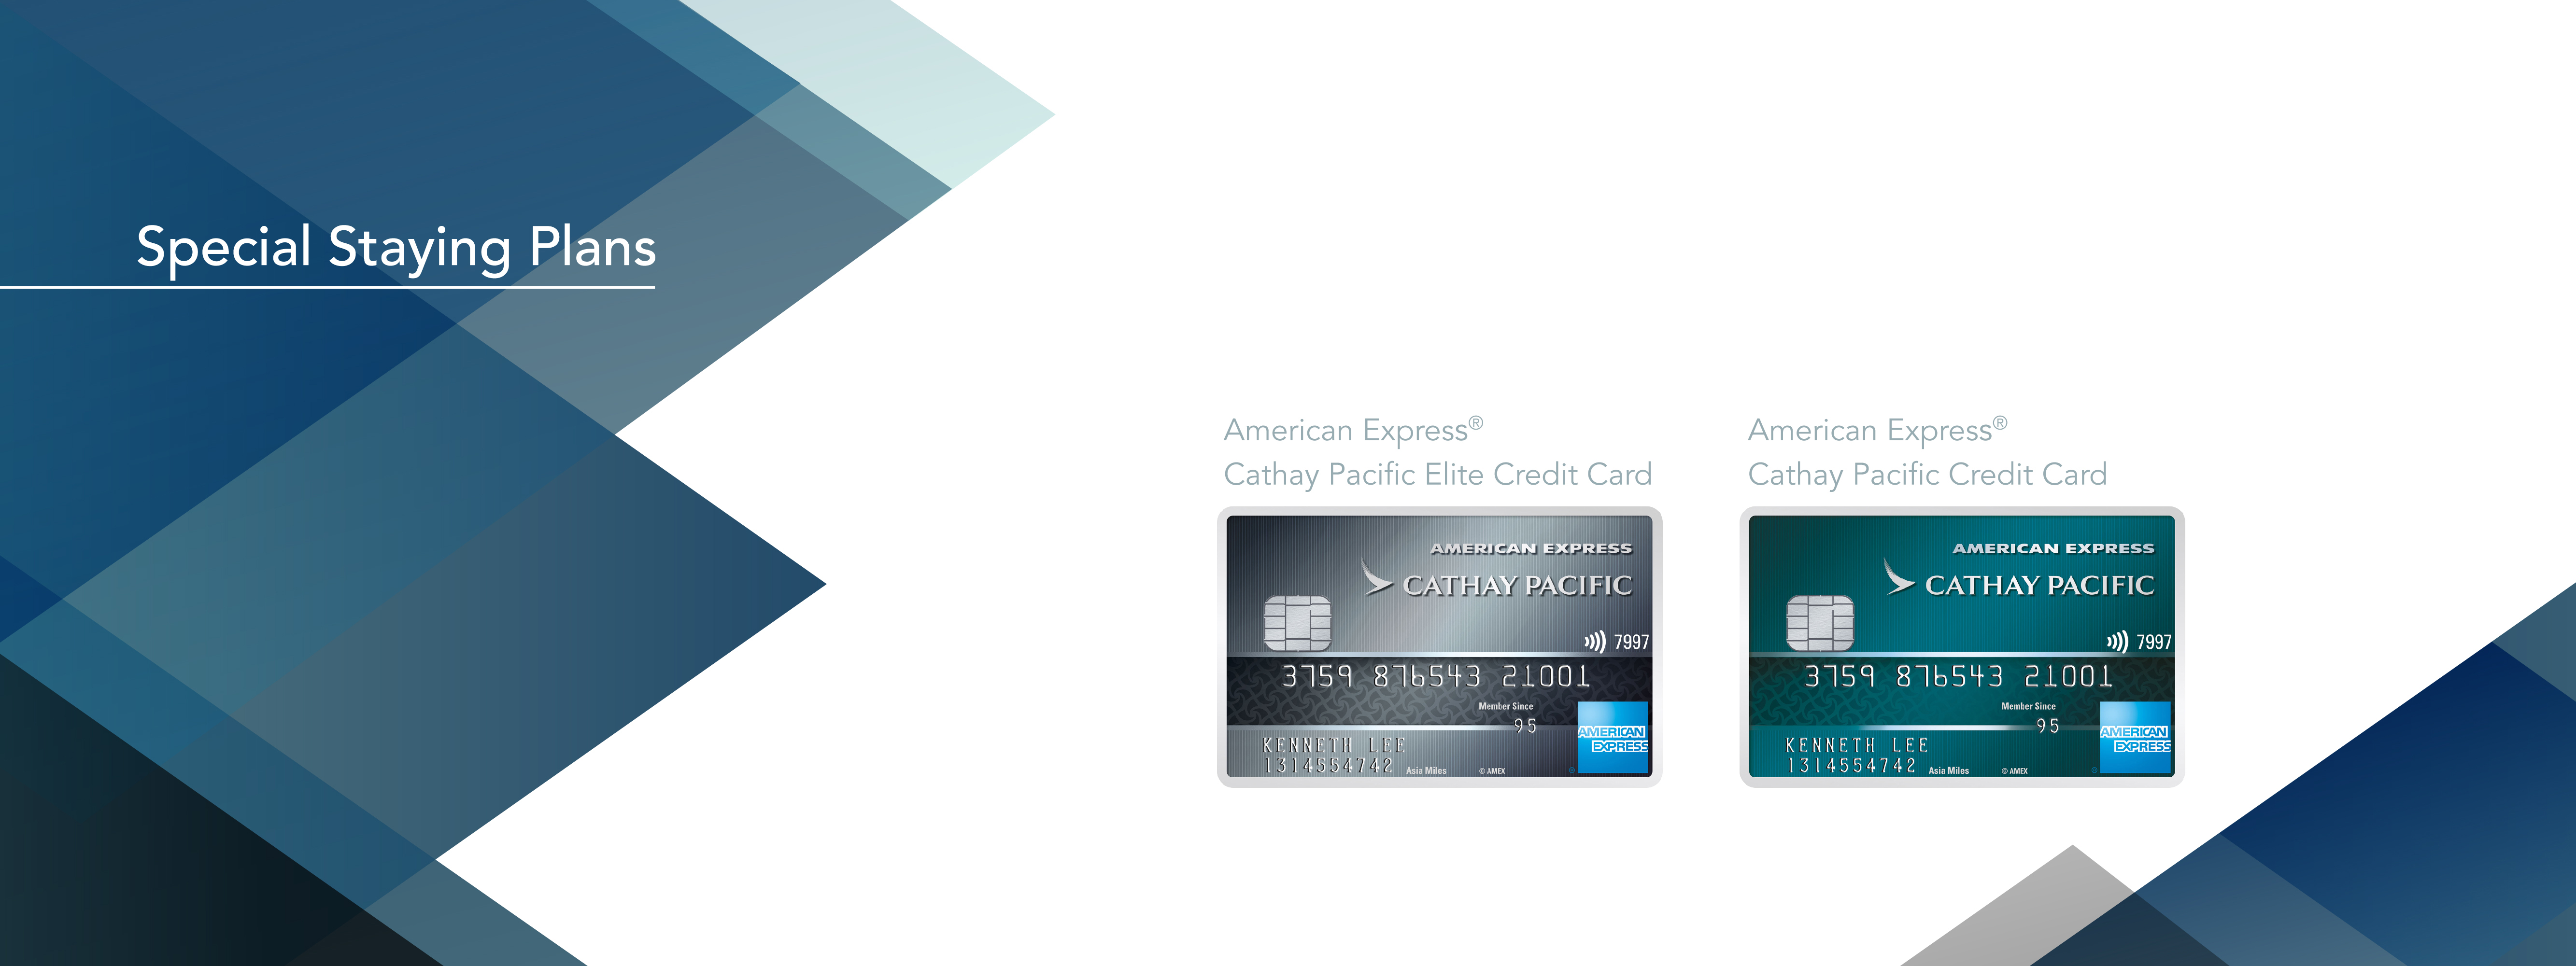 The Cathay Pacific American Express® Credit Card